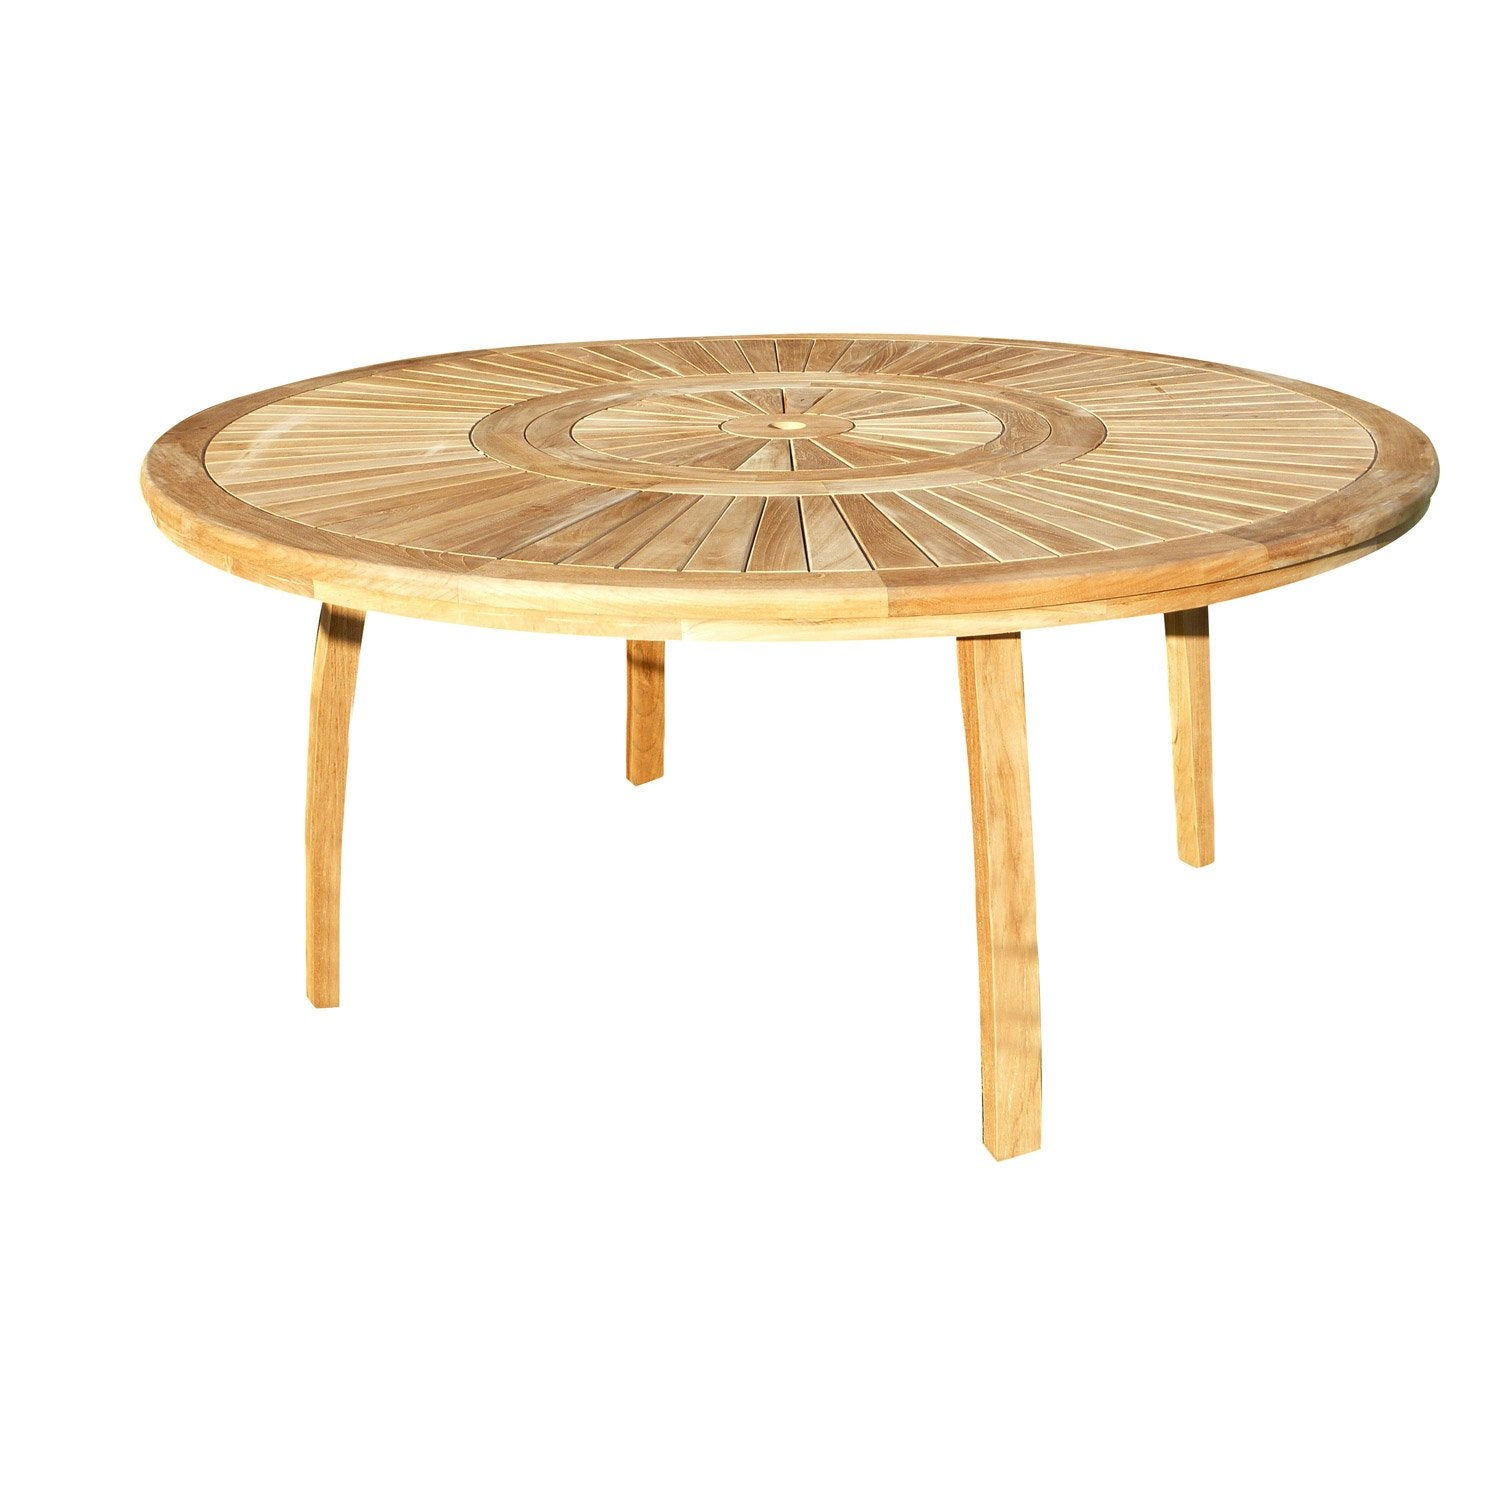 Table de jardin orion ronde naturel 8 personnes leroy merlin for Table ronde 8 personnes dimensions